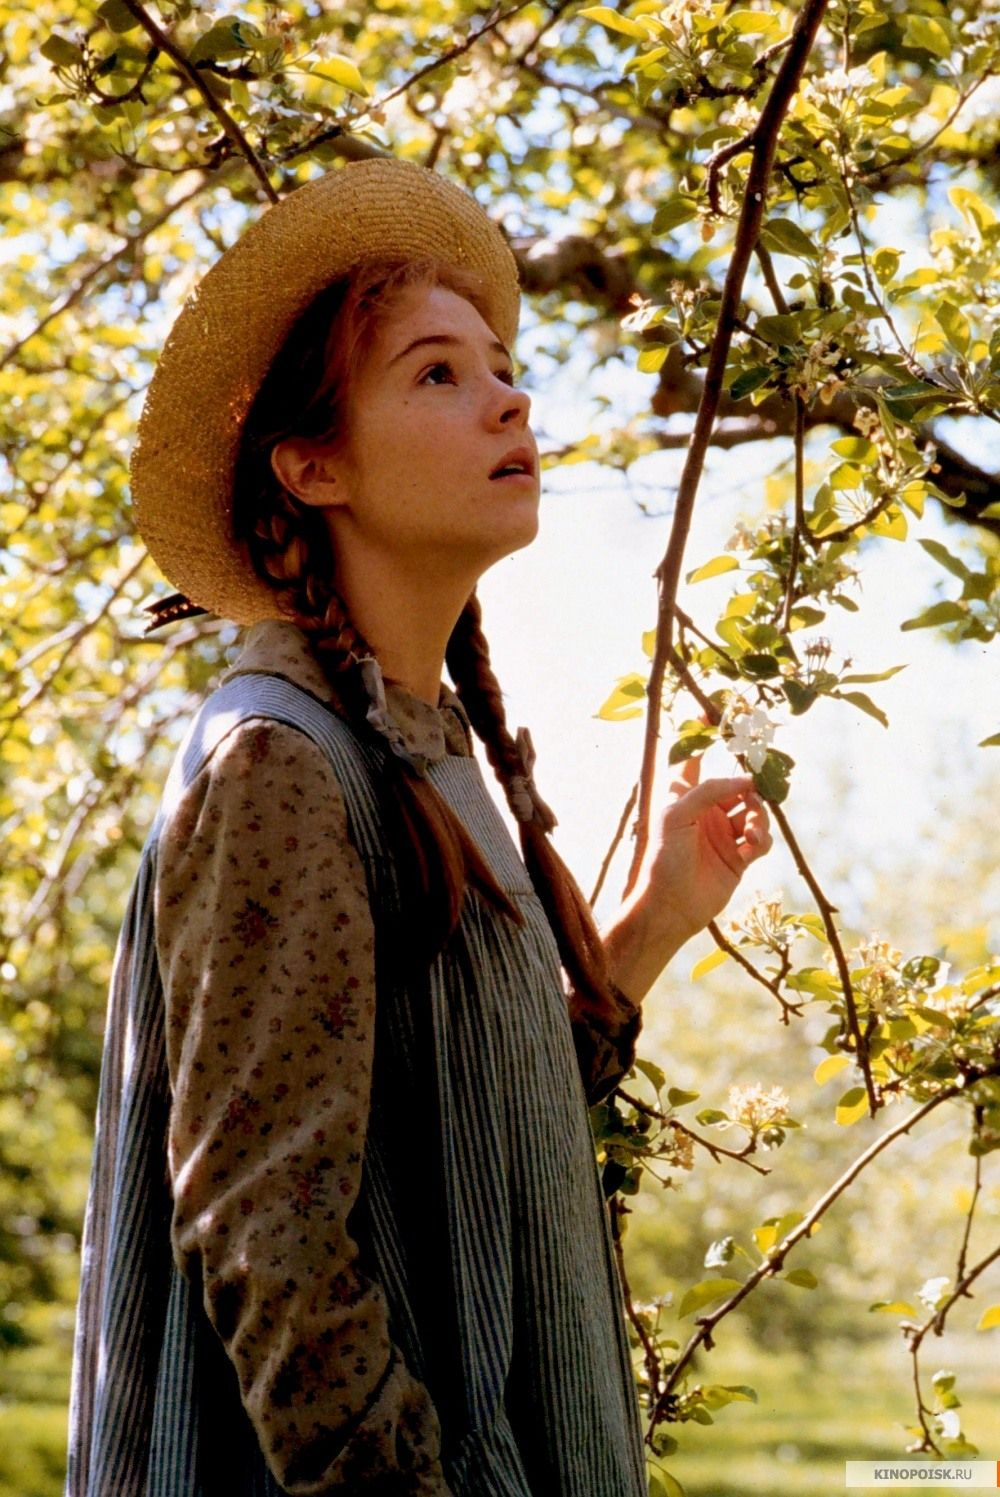 Anne of Green Gables If youre going to call me Anne be